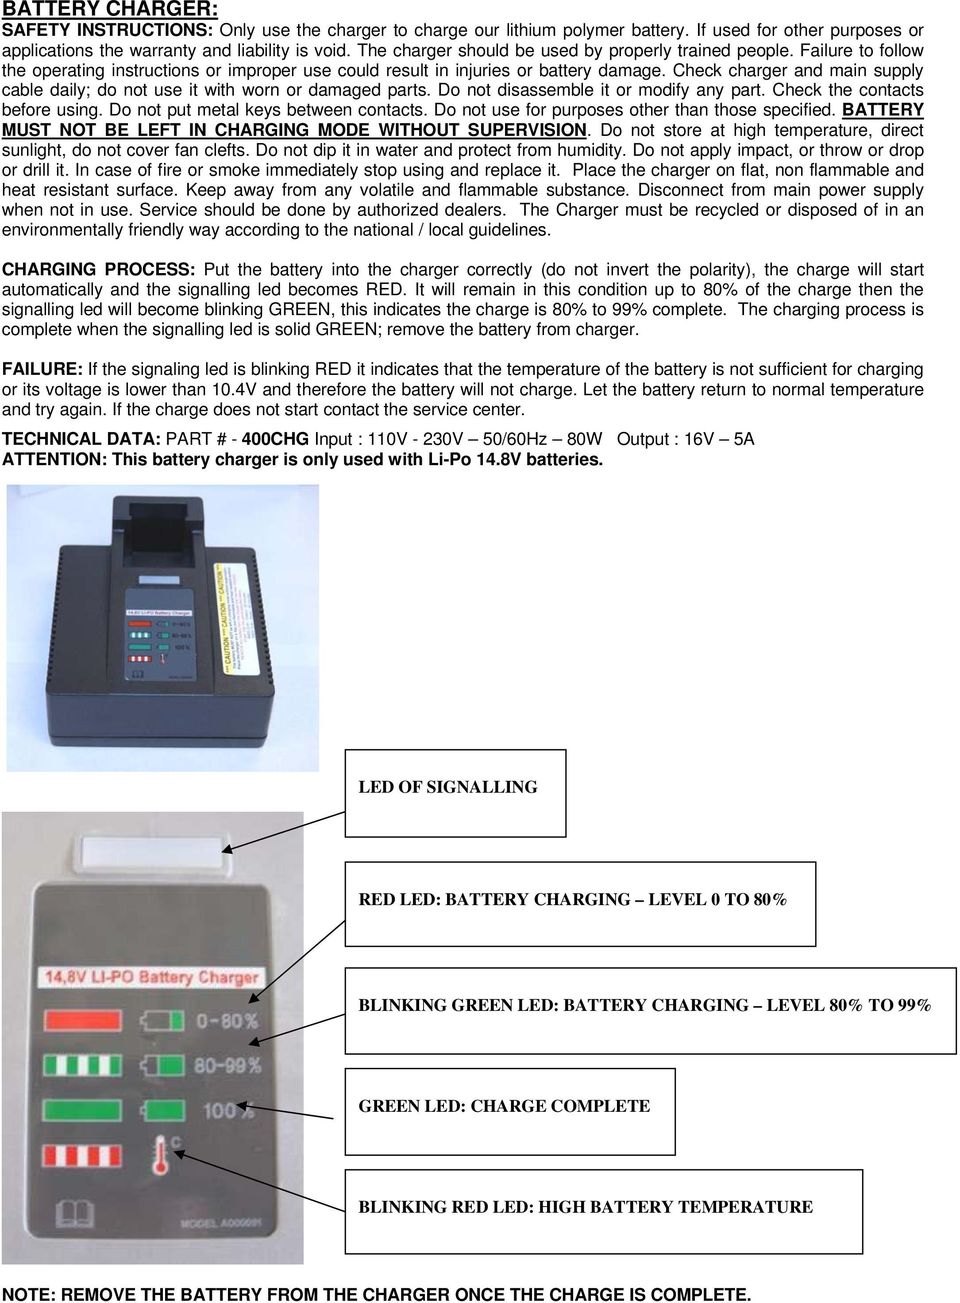 POLYCHEM OPERATION MANUAL SPARE PARTS LIST B800 BATTERY POWERED